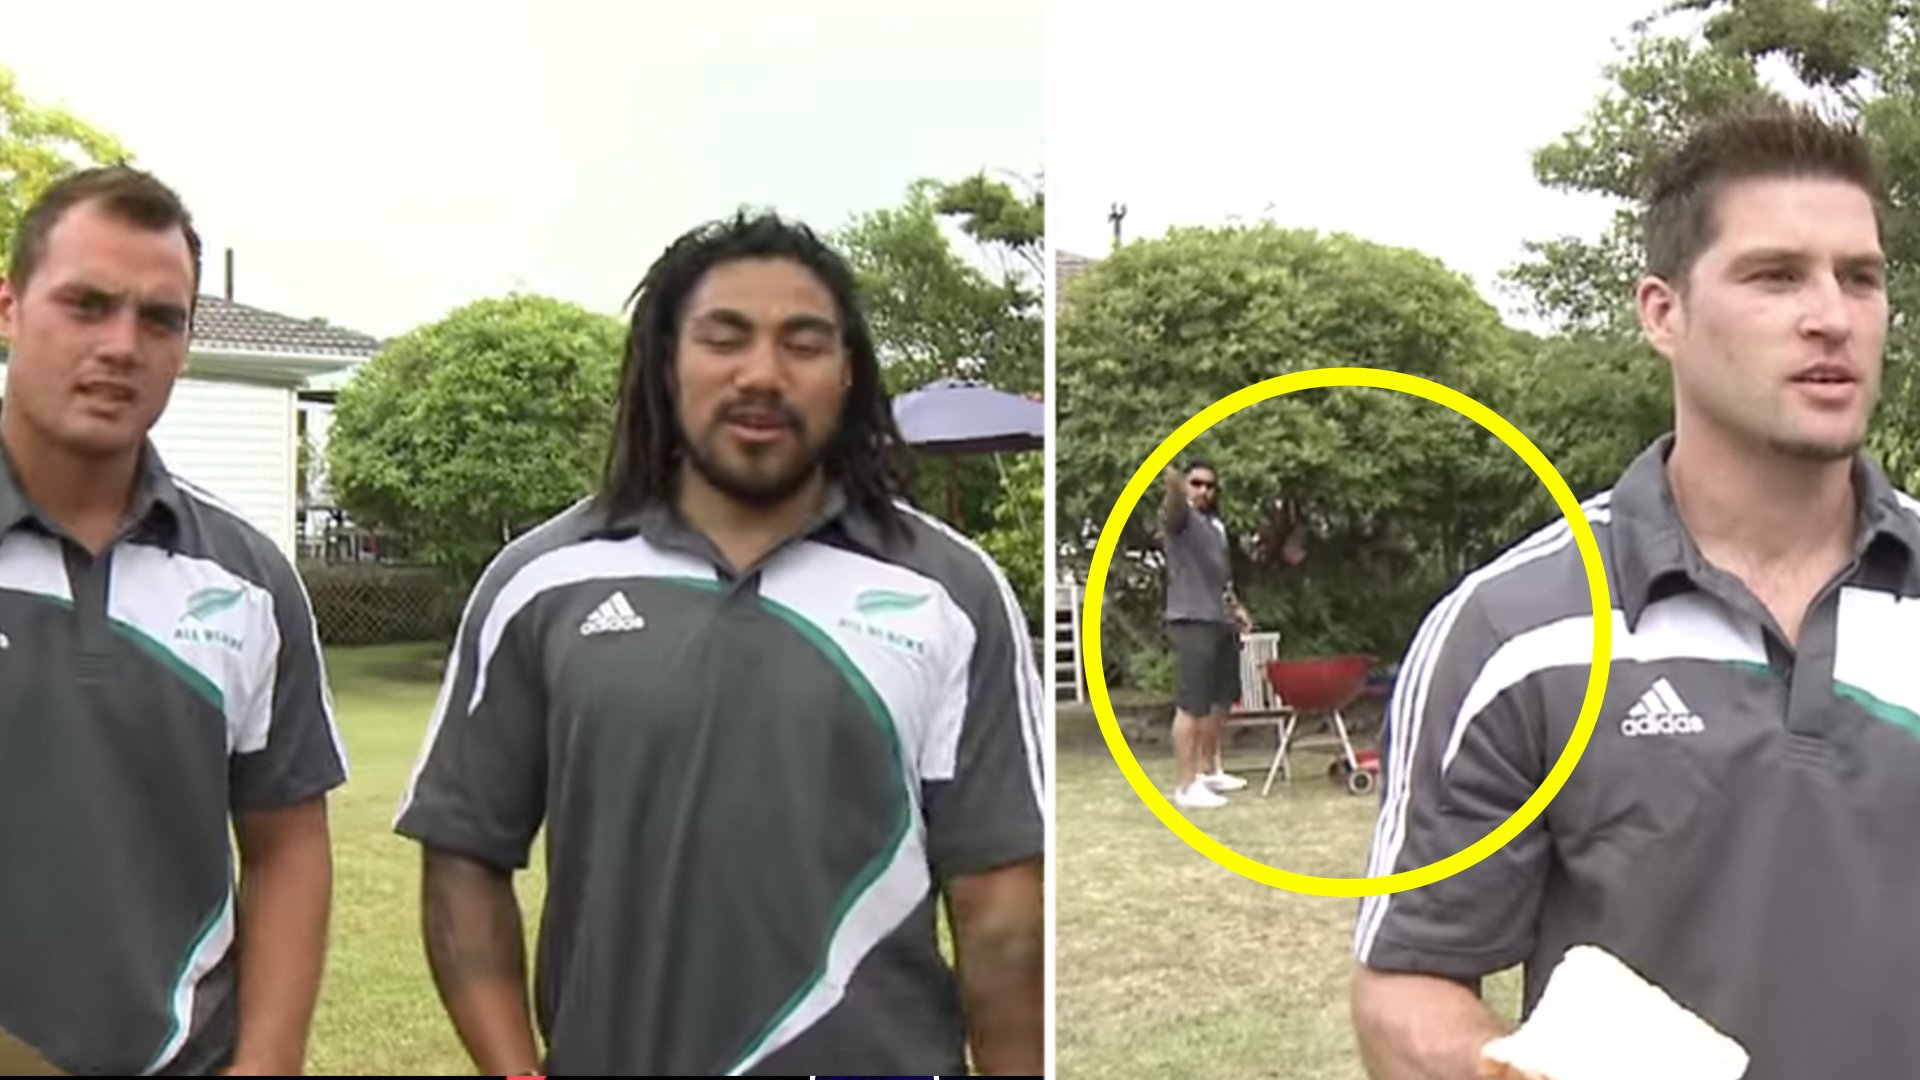 The original All Black trick shots video has suddenly gone viral again 9 years later